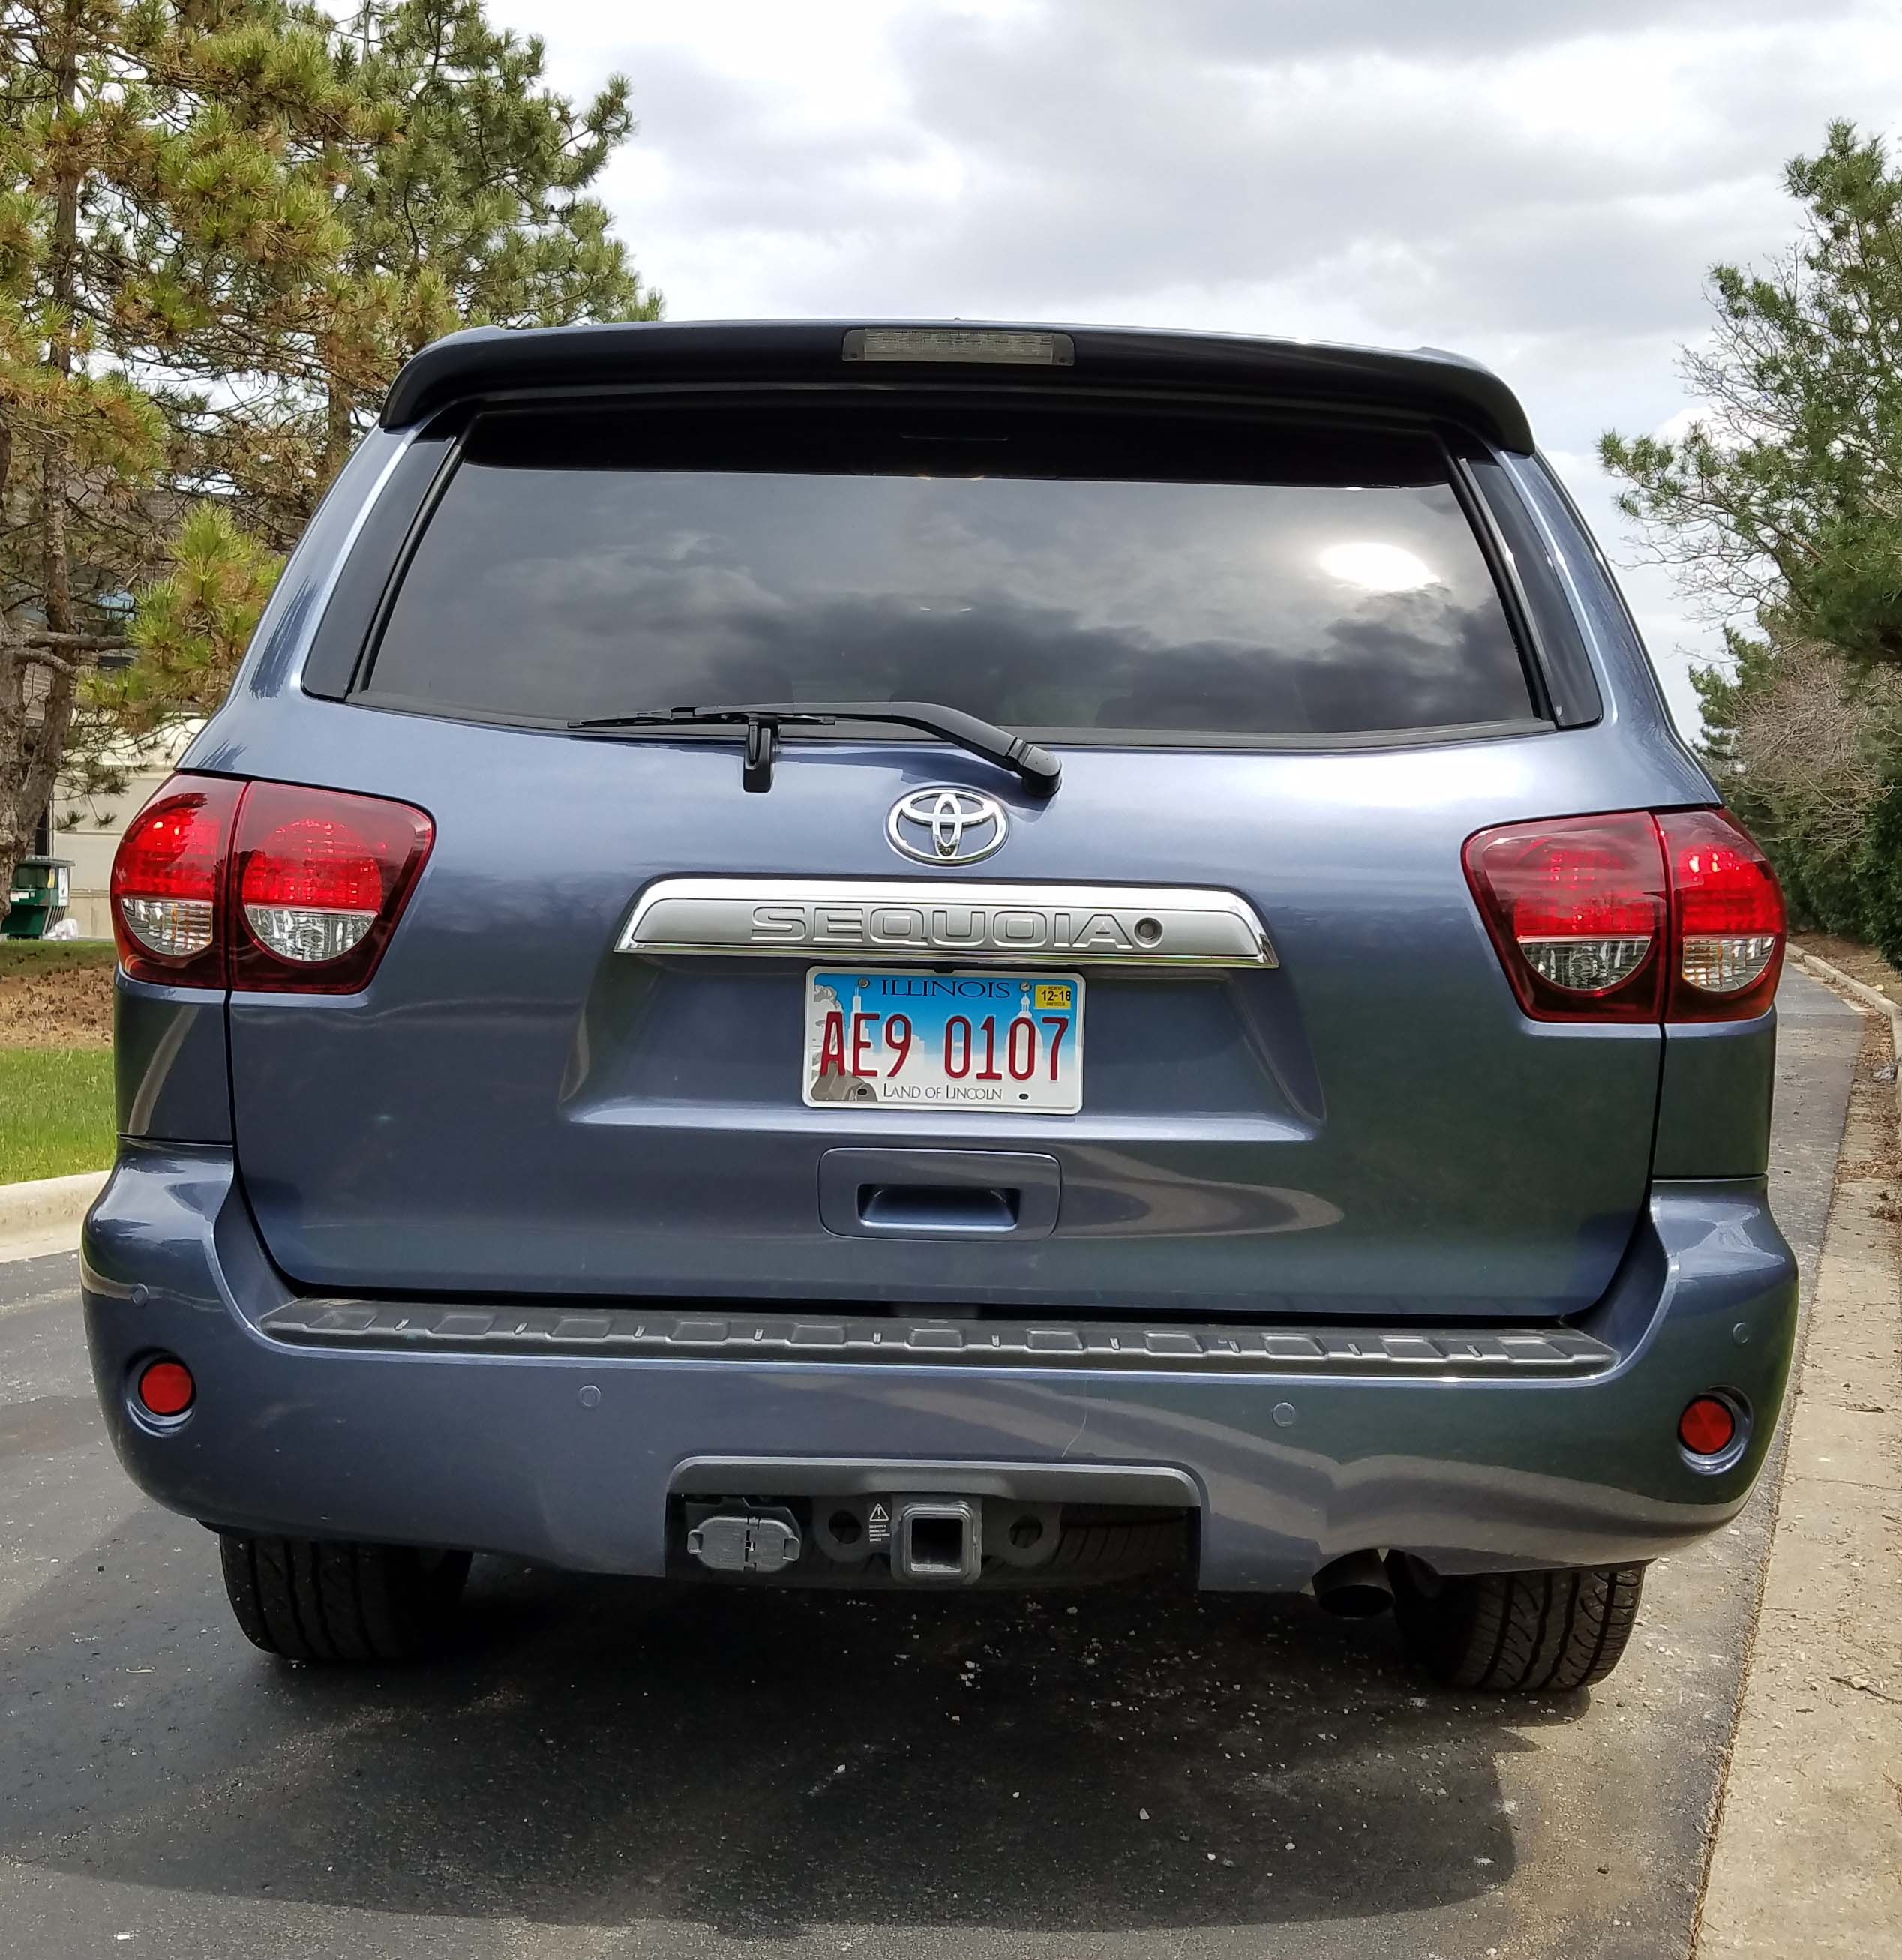 2018 Toyota Sequoia Review And Specs: 2018 Toyota Sequoia Limited 4×4